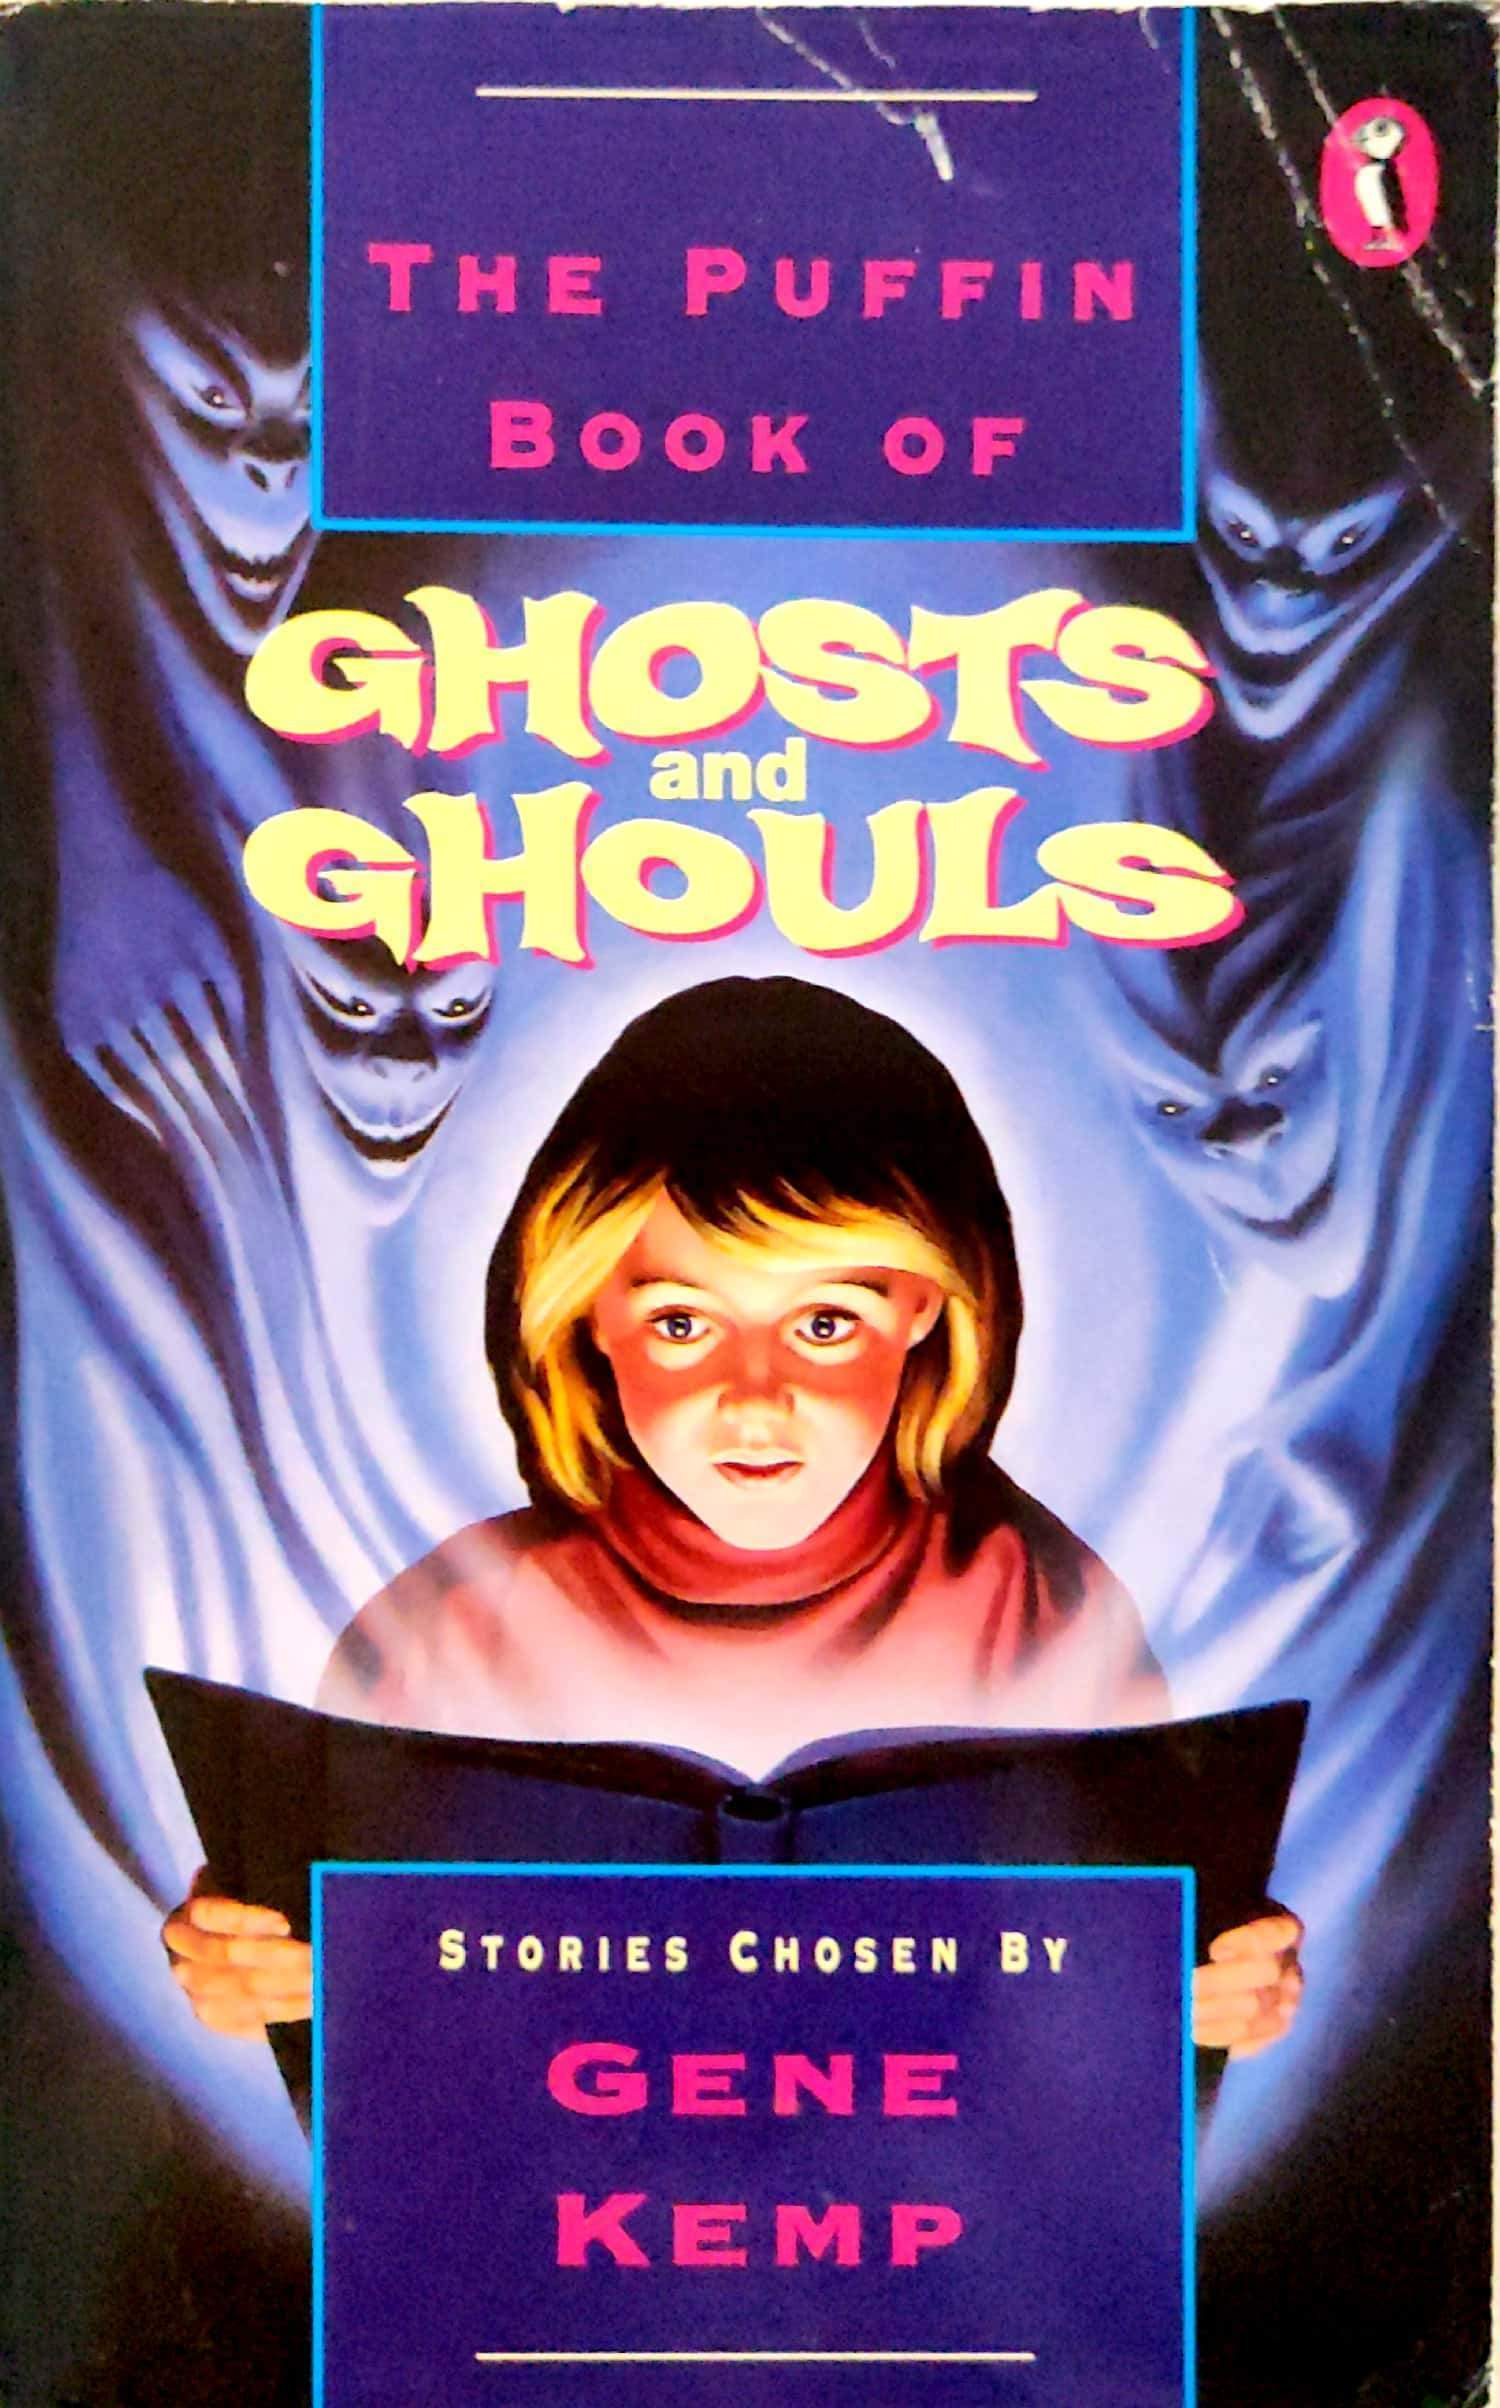 The Puffin Book of Ghosts and Ghouls: Stories